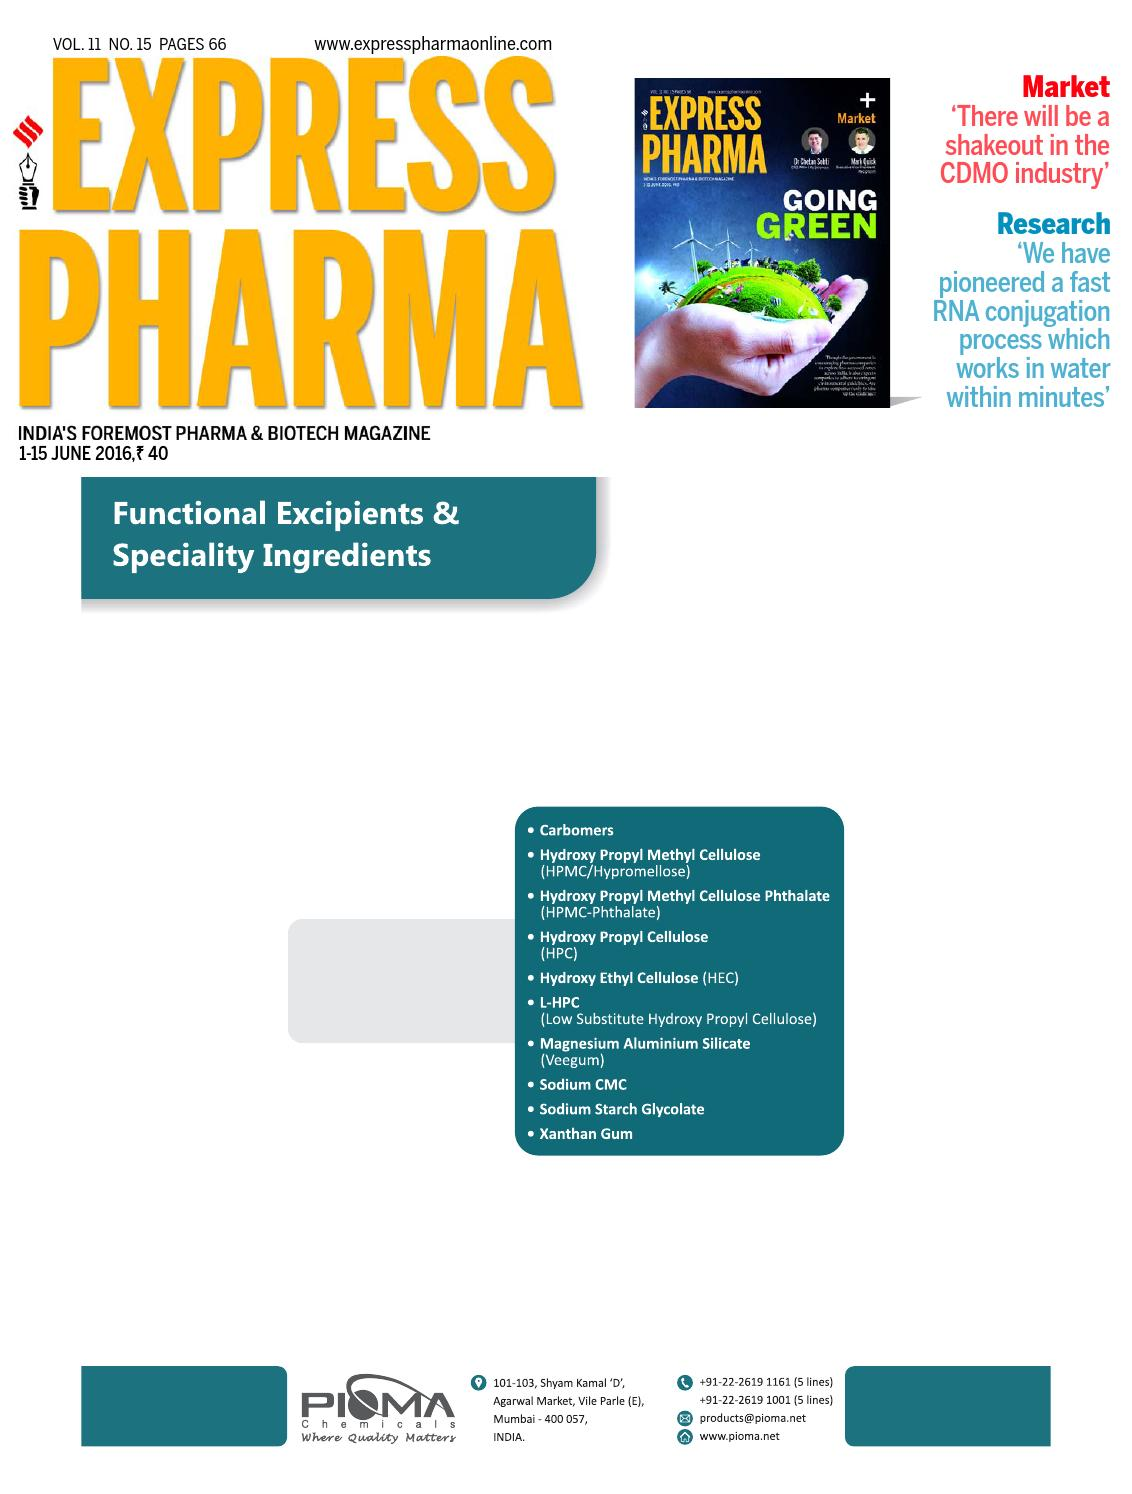 Express Pharma (Vol 11, No 15) June 1-15, 2016 by Indian